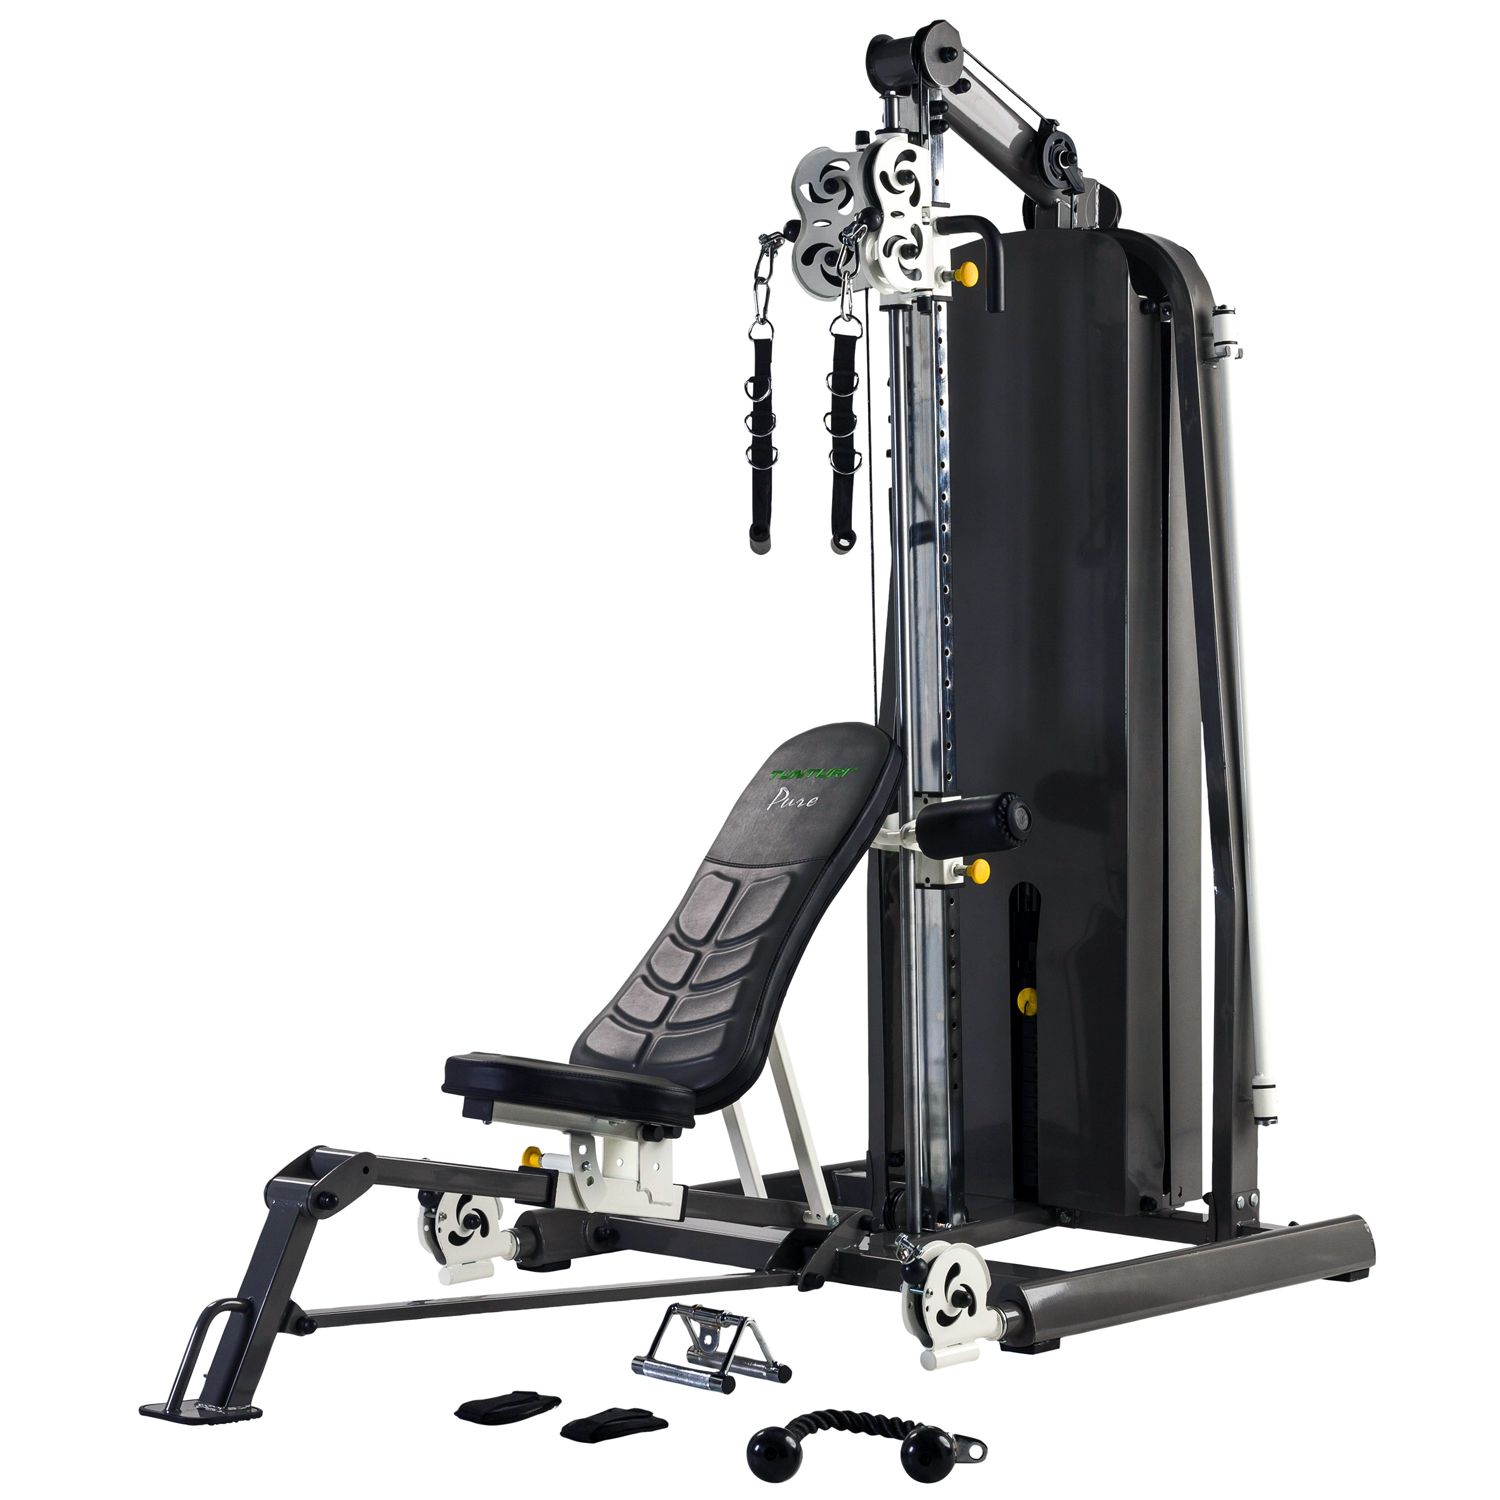 Home multi gym shop for cheap weight training and save